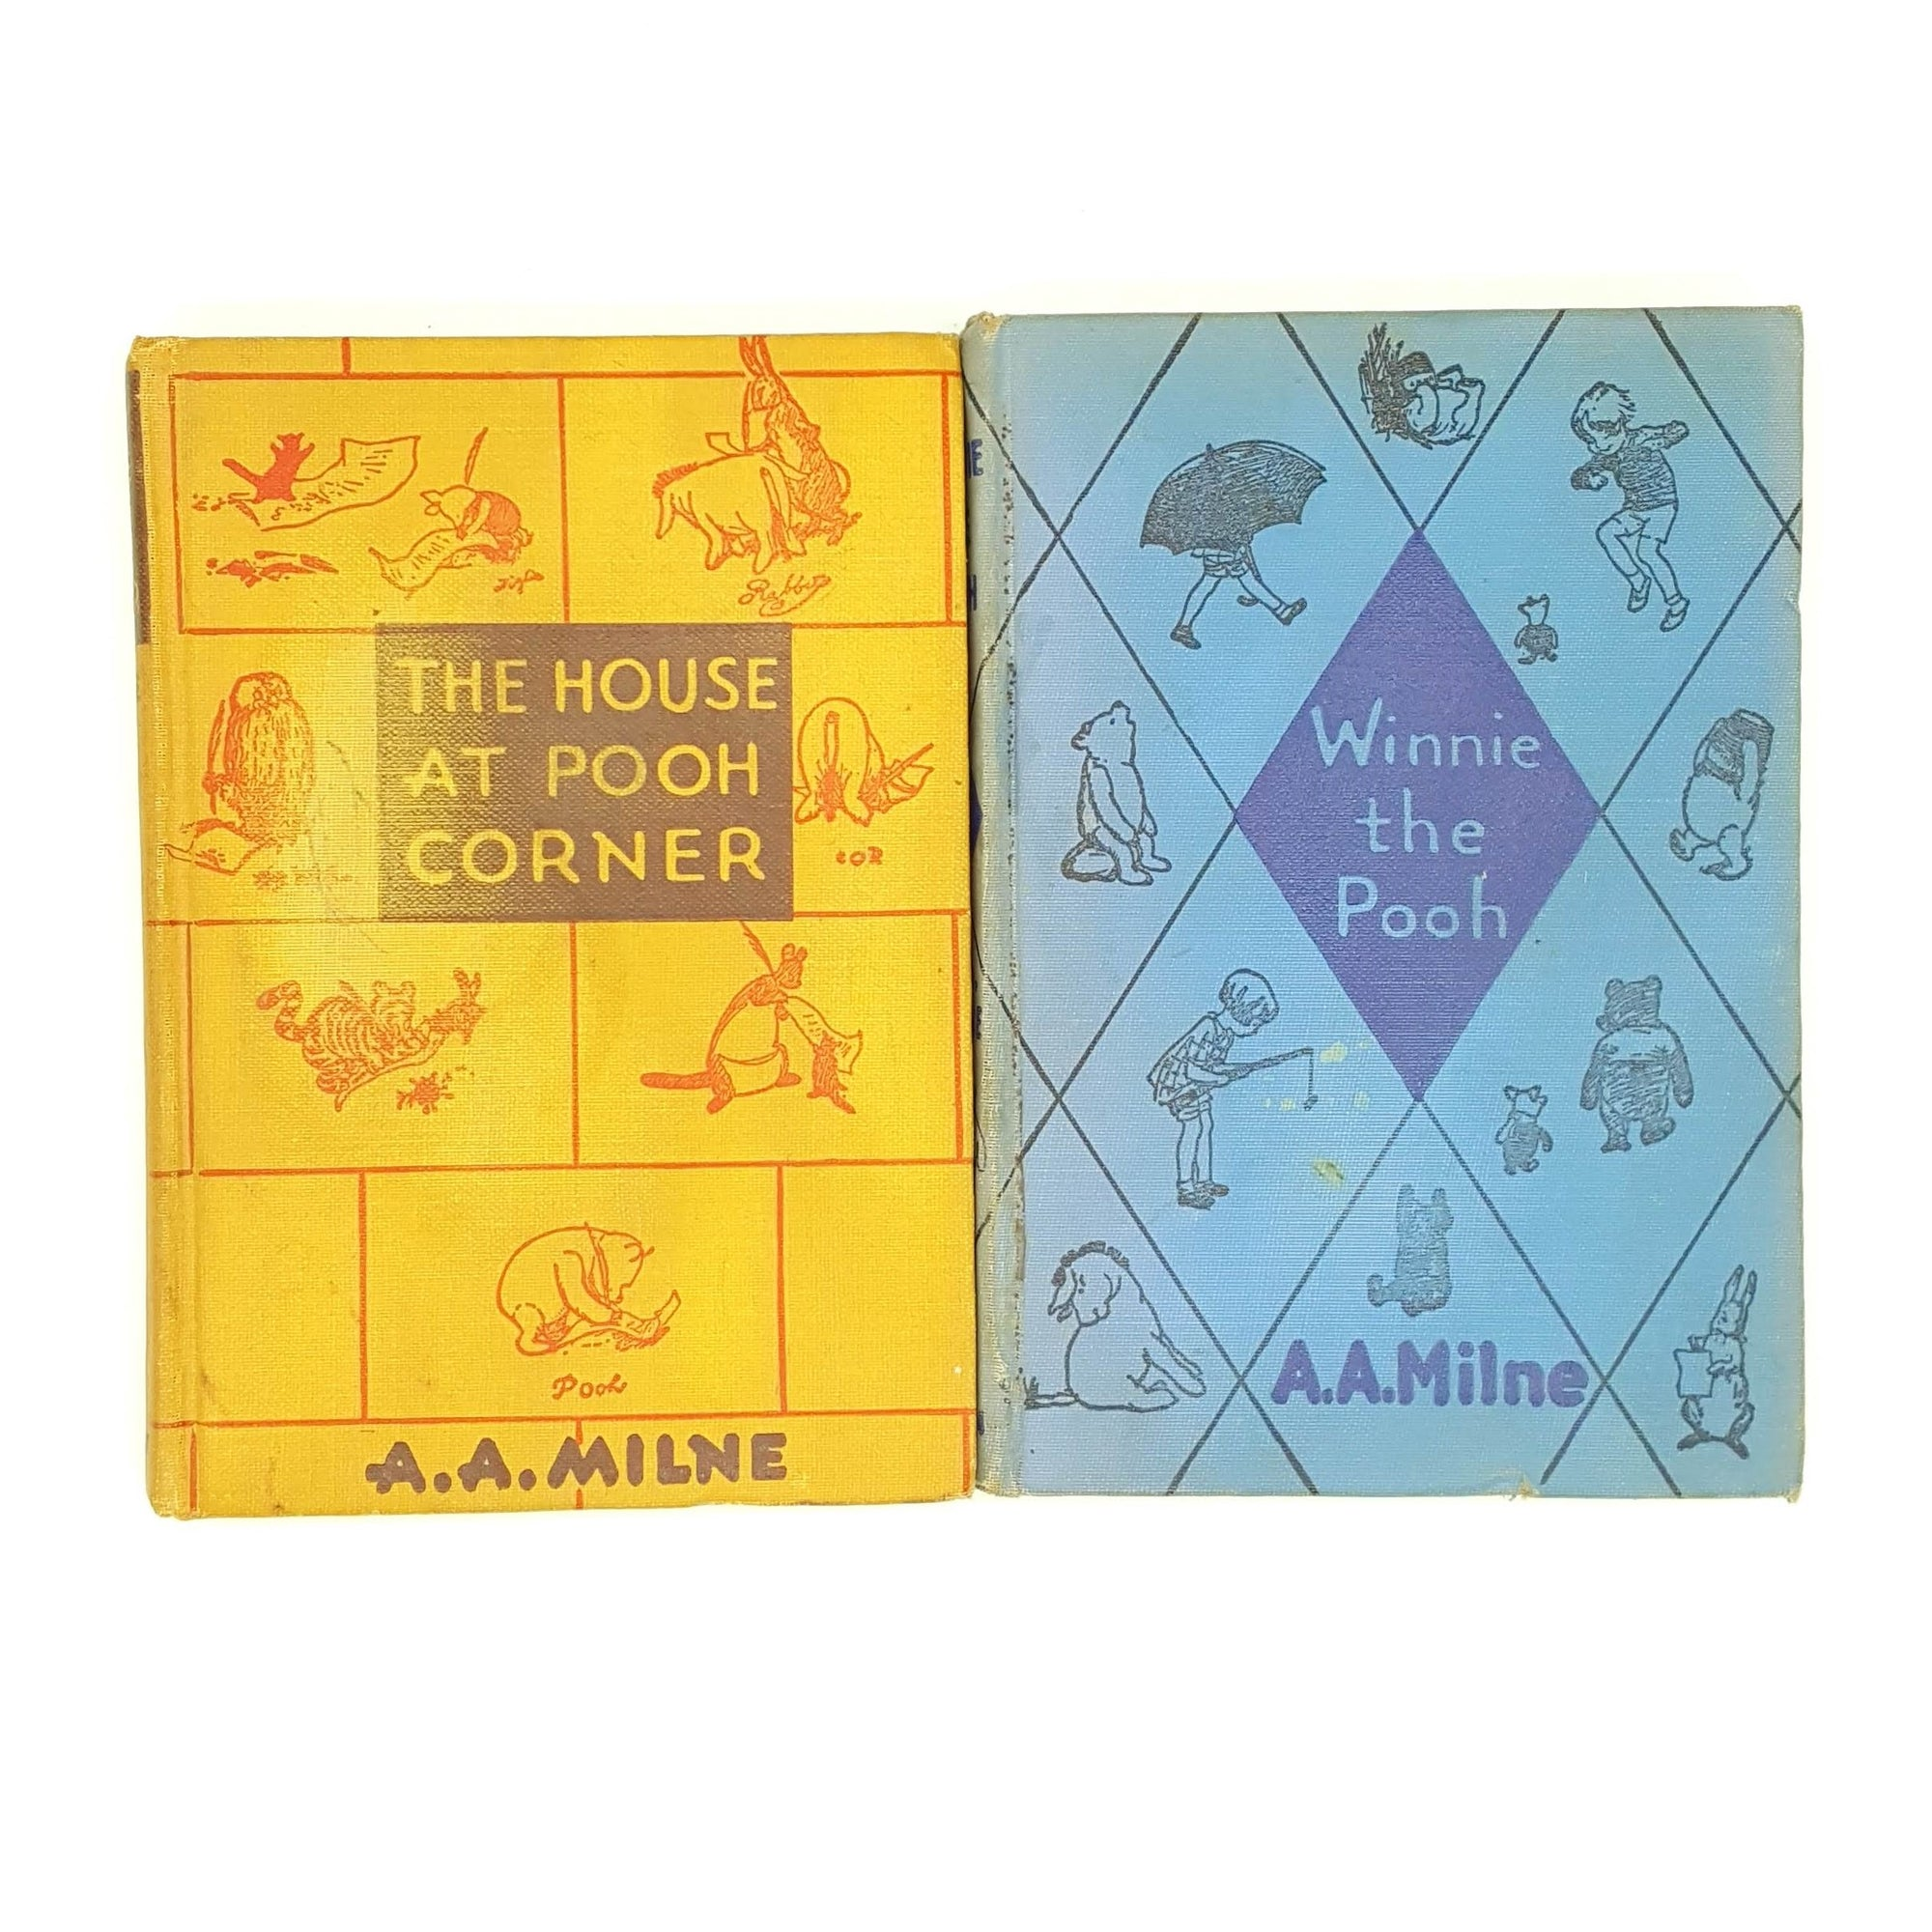 A.A.Milne's Winnie The Pooh and The House at Pooh Corner Country House Library